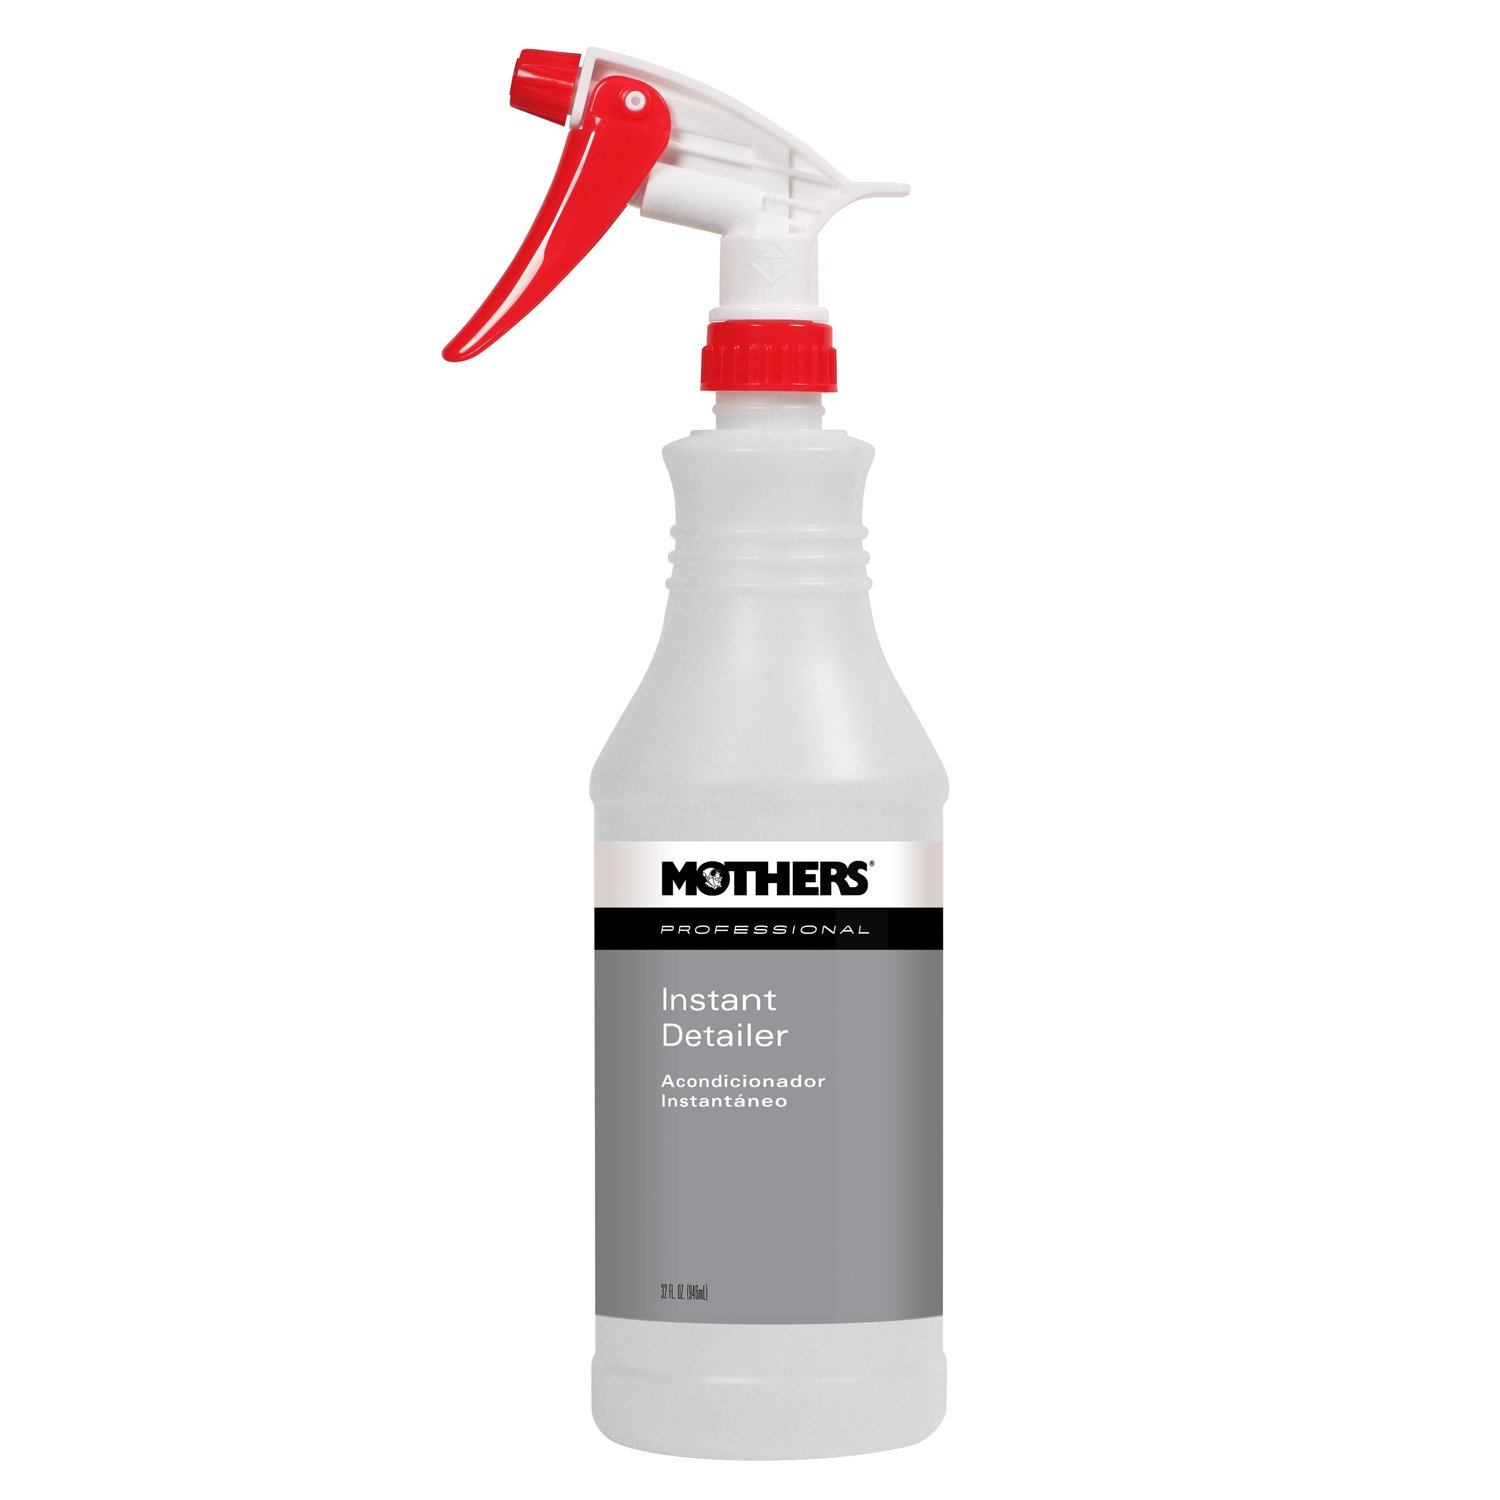 Mothers 85632-12 Professional Instant Detailer Refillable Spray Bottle, (Pack of 12)